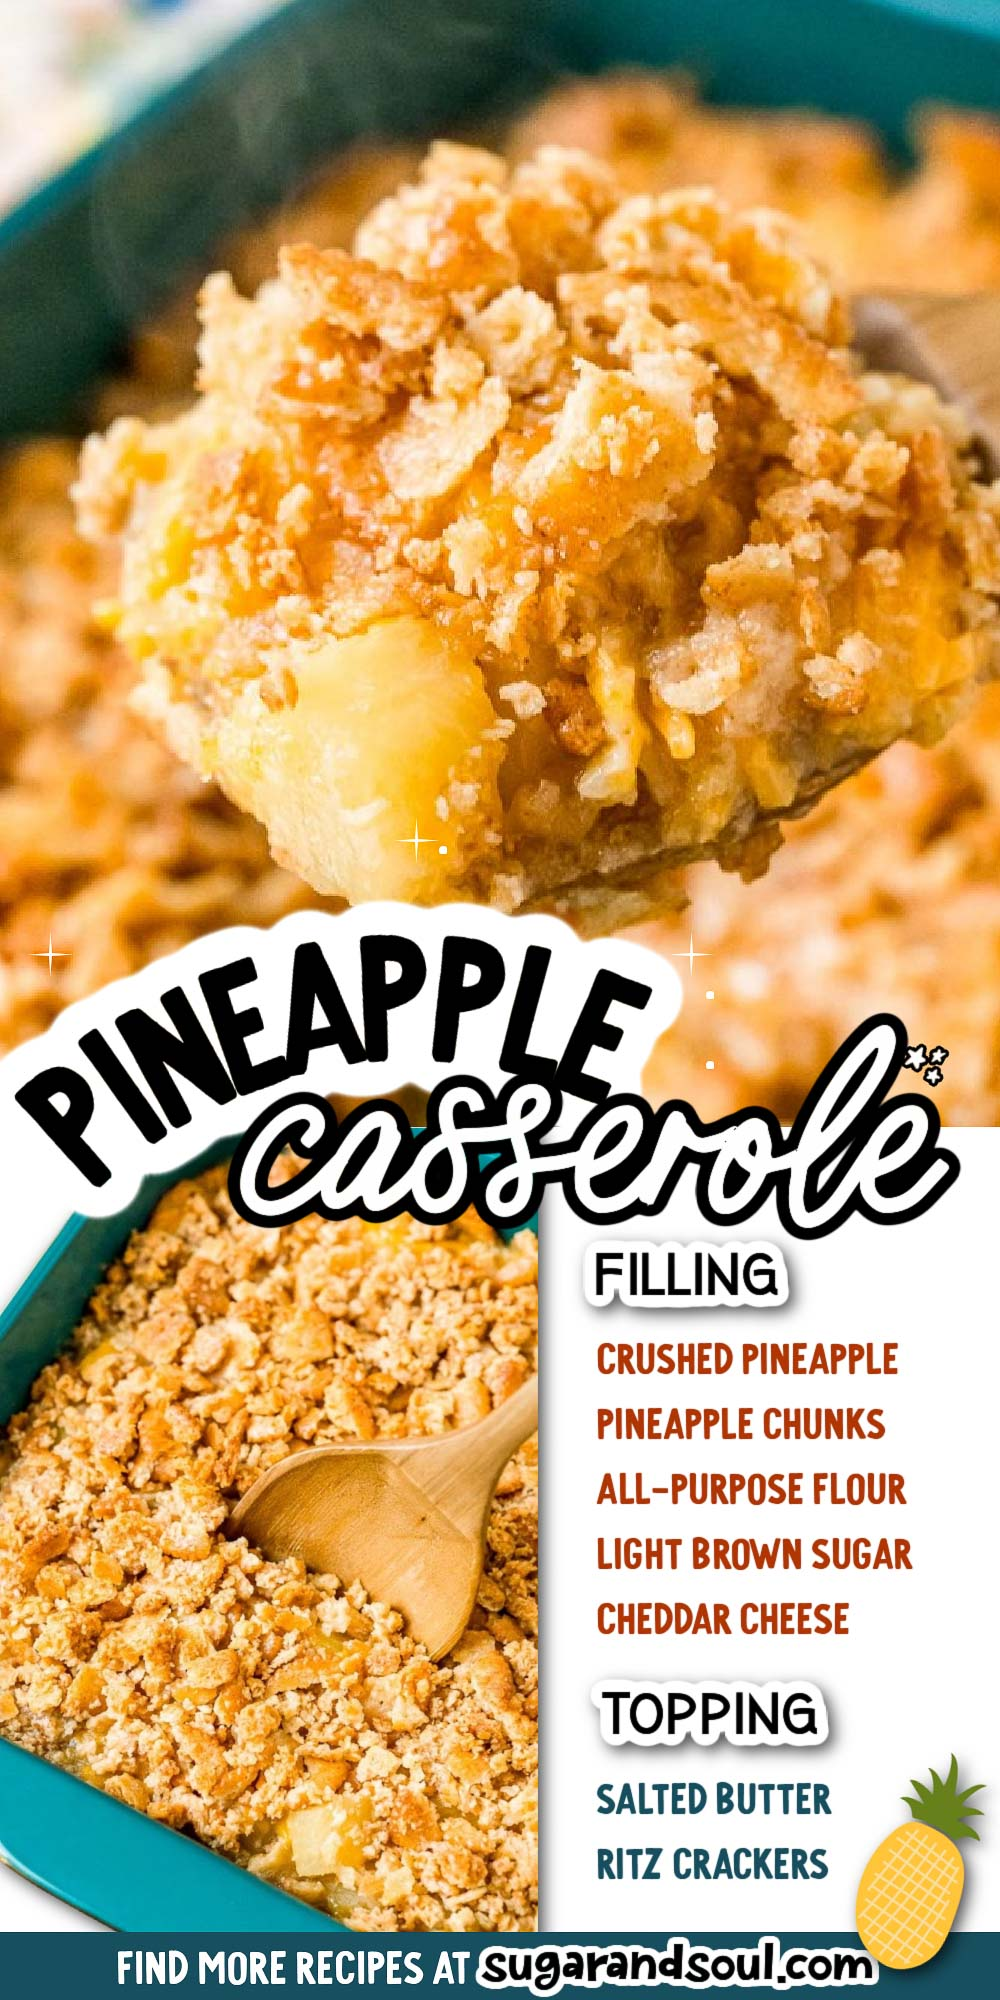 Pineapple Casserole is a salty-sweet side dish that's popular in the South and always a hit at pot lucks. It's made with pineapple, cheddar cheese, salty crackers, and a few other ingredients and takes just 5 minutes to prepare! via @sugarandsoulco